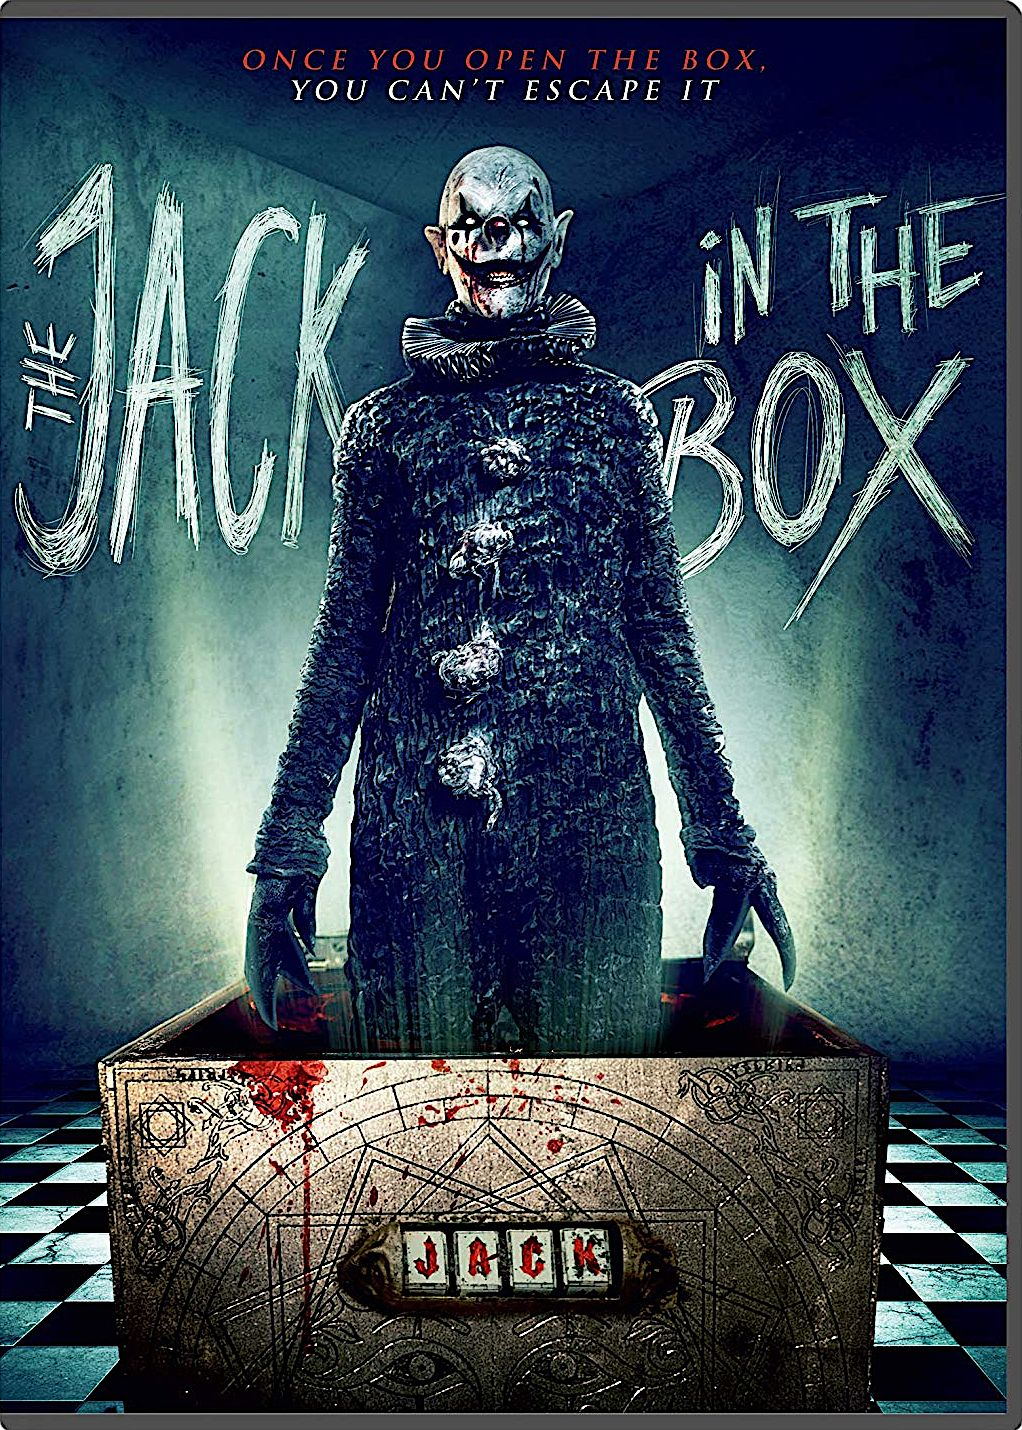 THE JACK IN THE BOX DVD (4DIGITAL MEDIA) in 2020